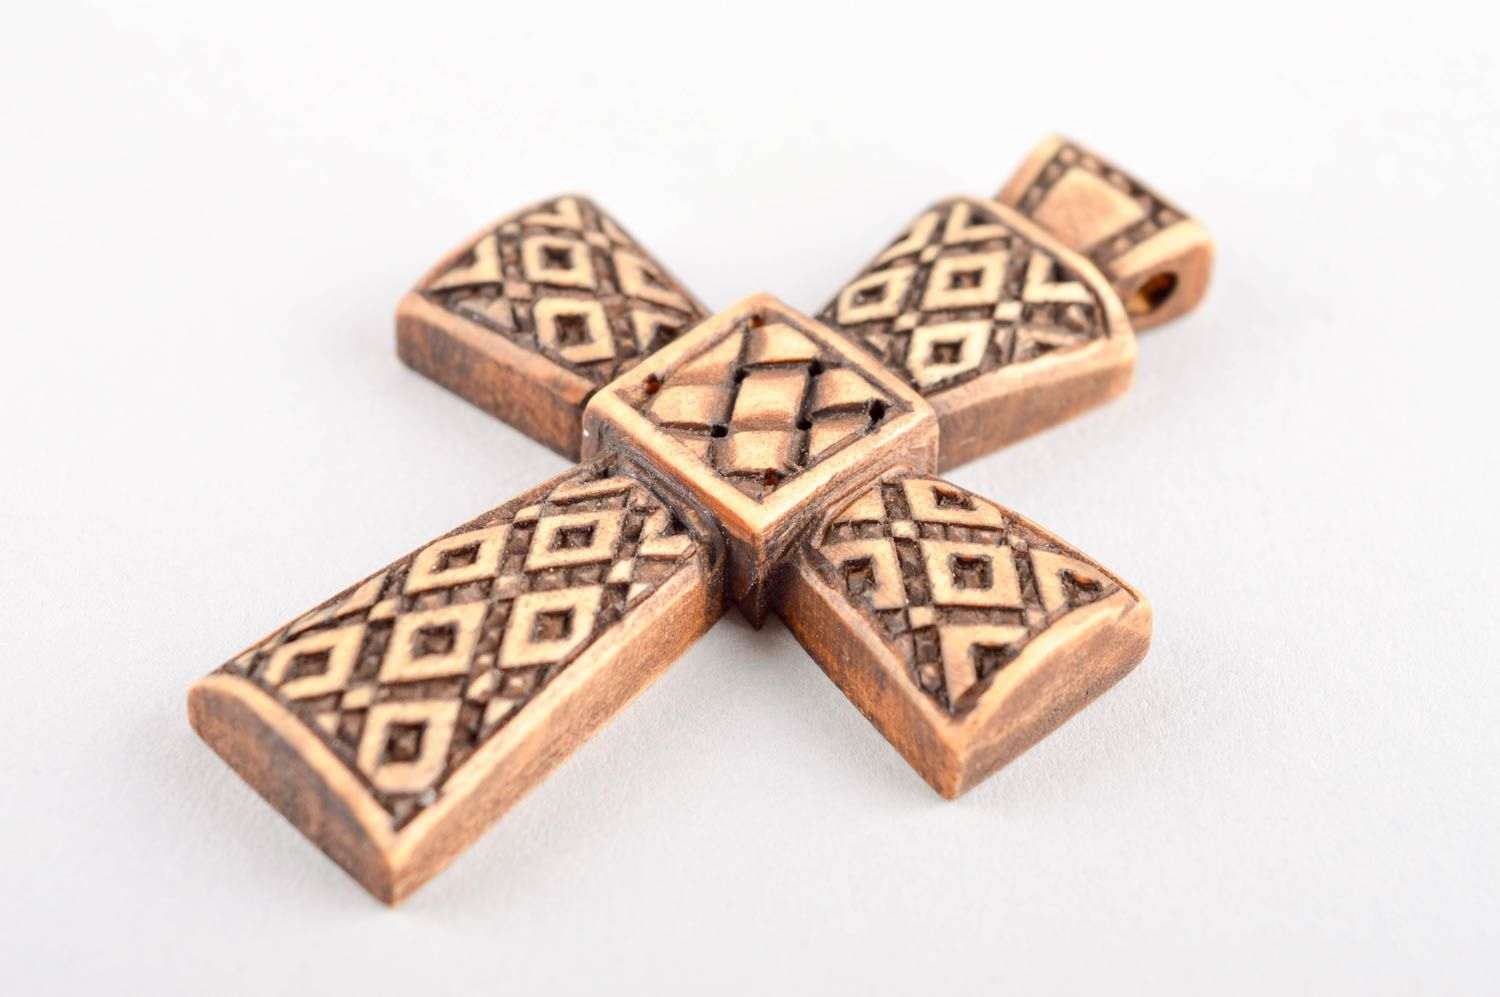 Handmade cross designer accessory unusual gift wooden jewelry wooden pendant photo 1